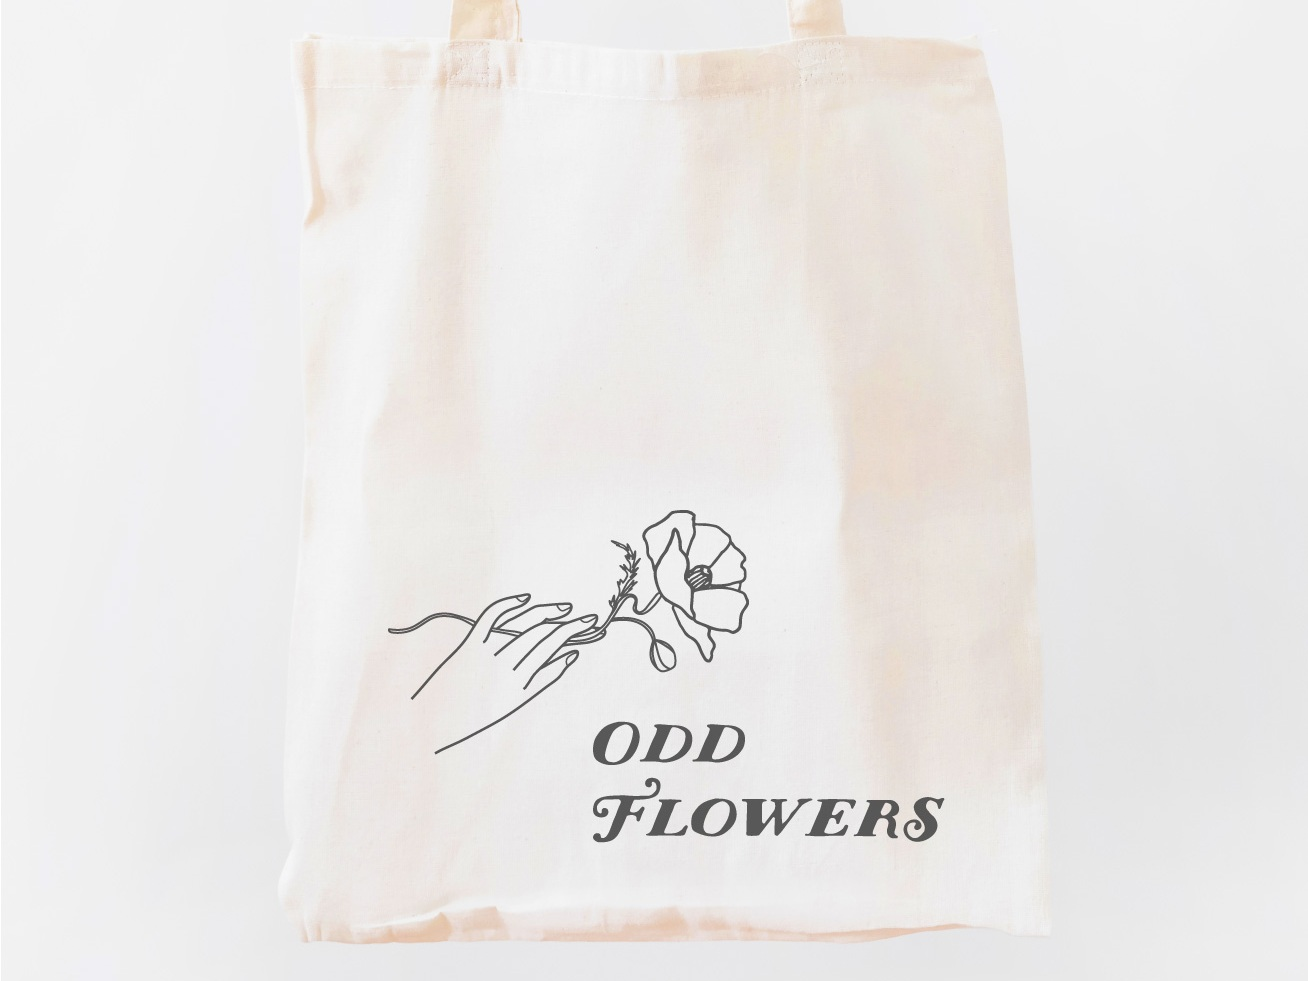 odd flowers tote bag with logo design